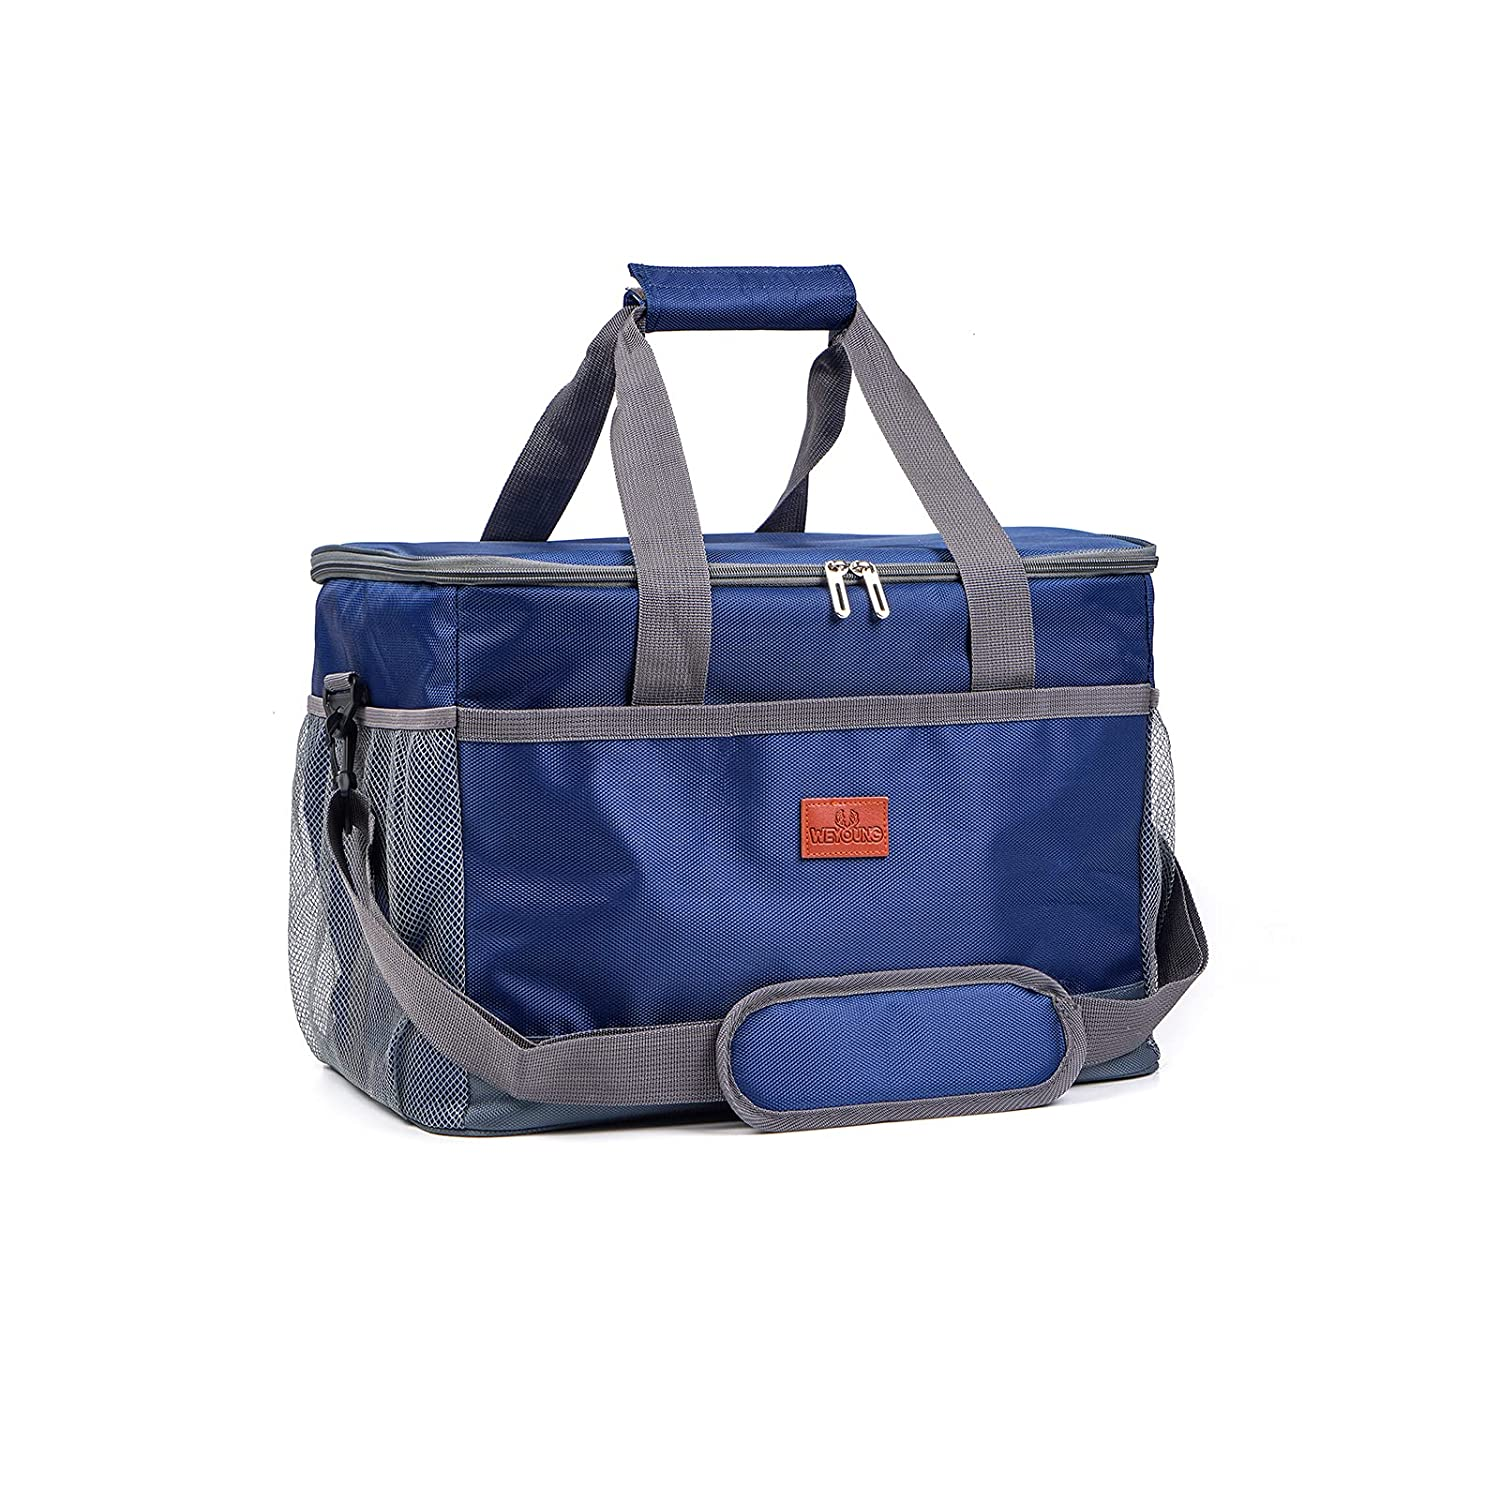 Commercial Insulated Food Delivery Bag - 16